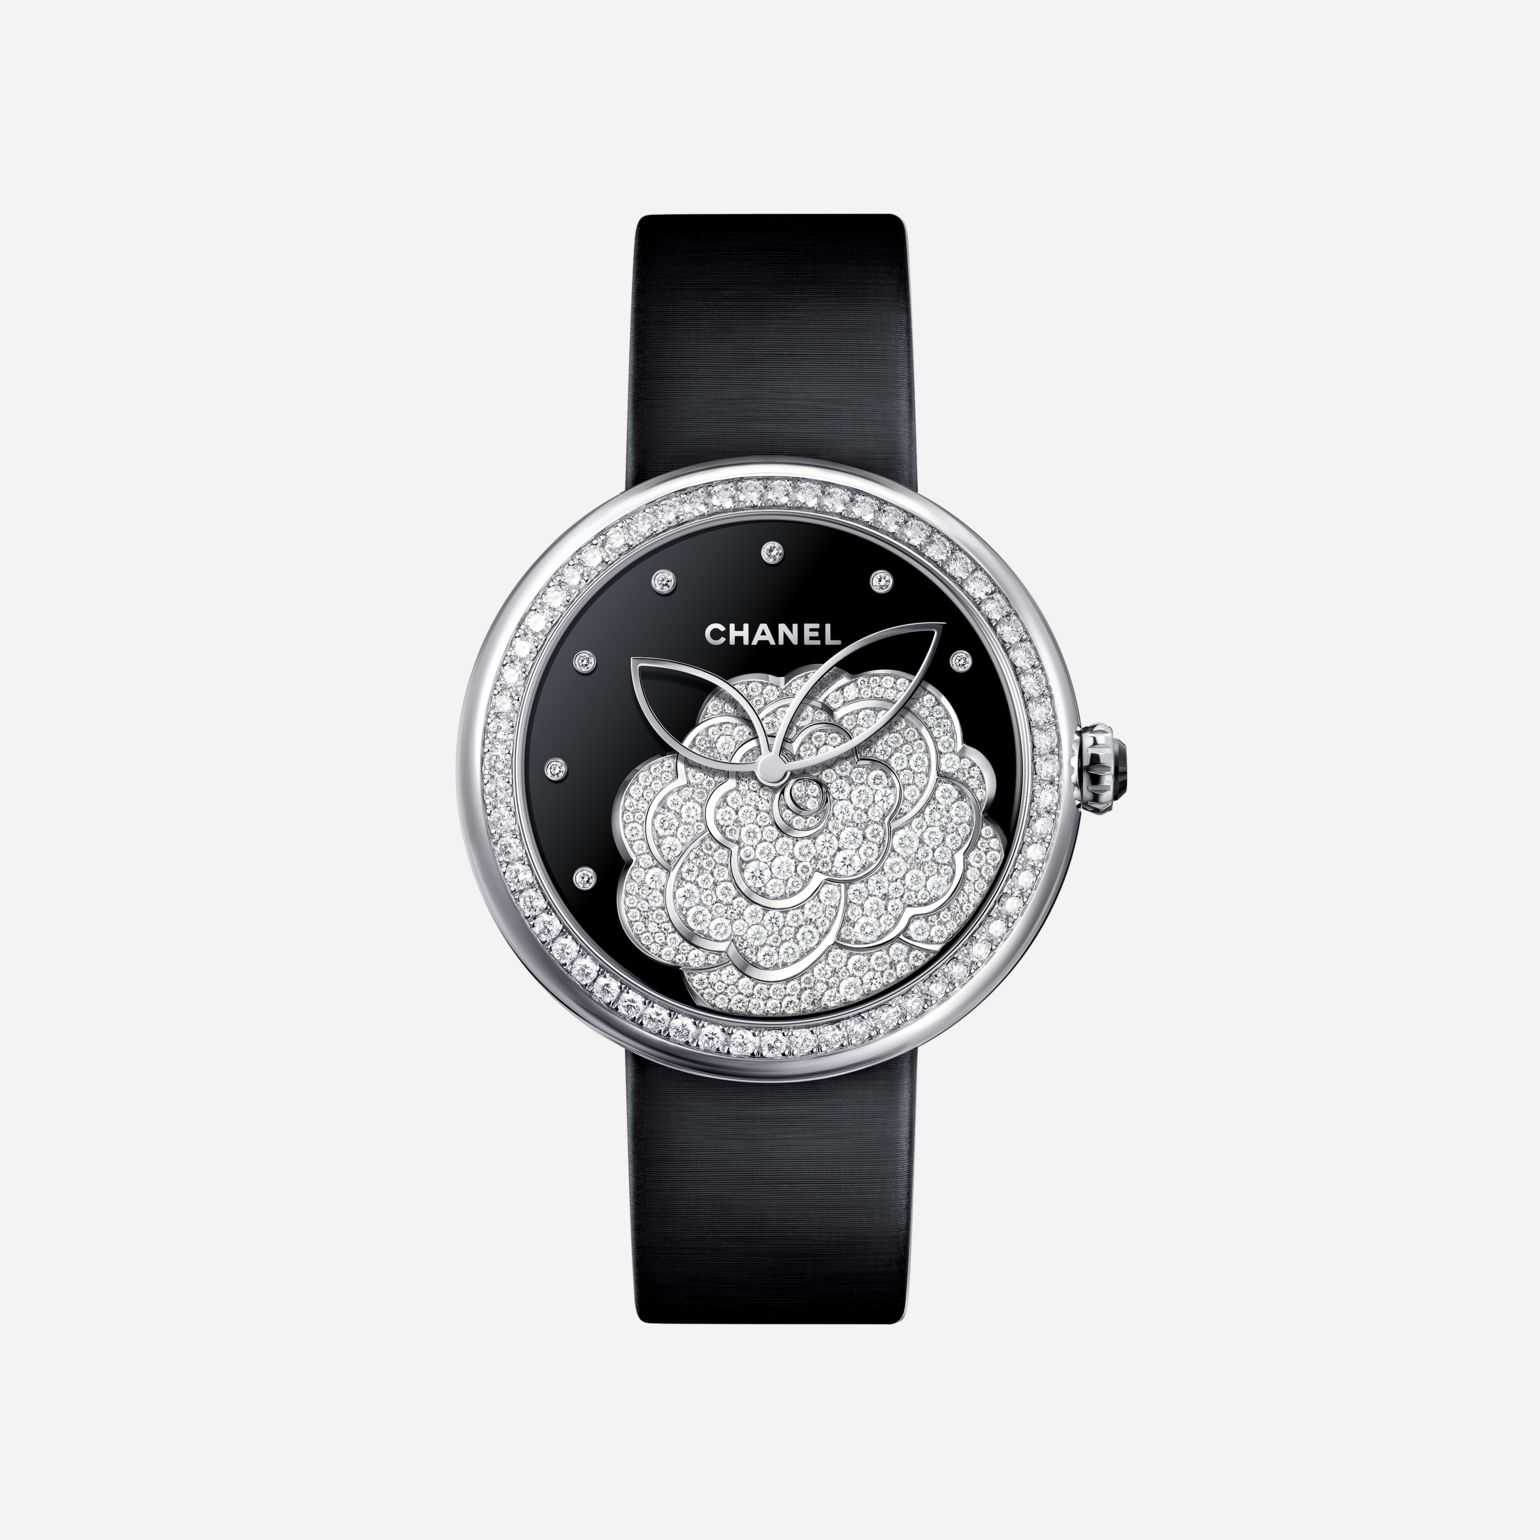 Mademoiselle Privé Watch Camellia set with diamonds, onyx dial, and diamond indicators